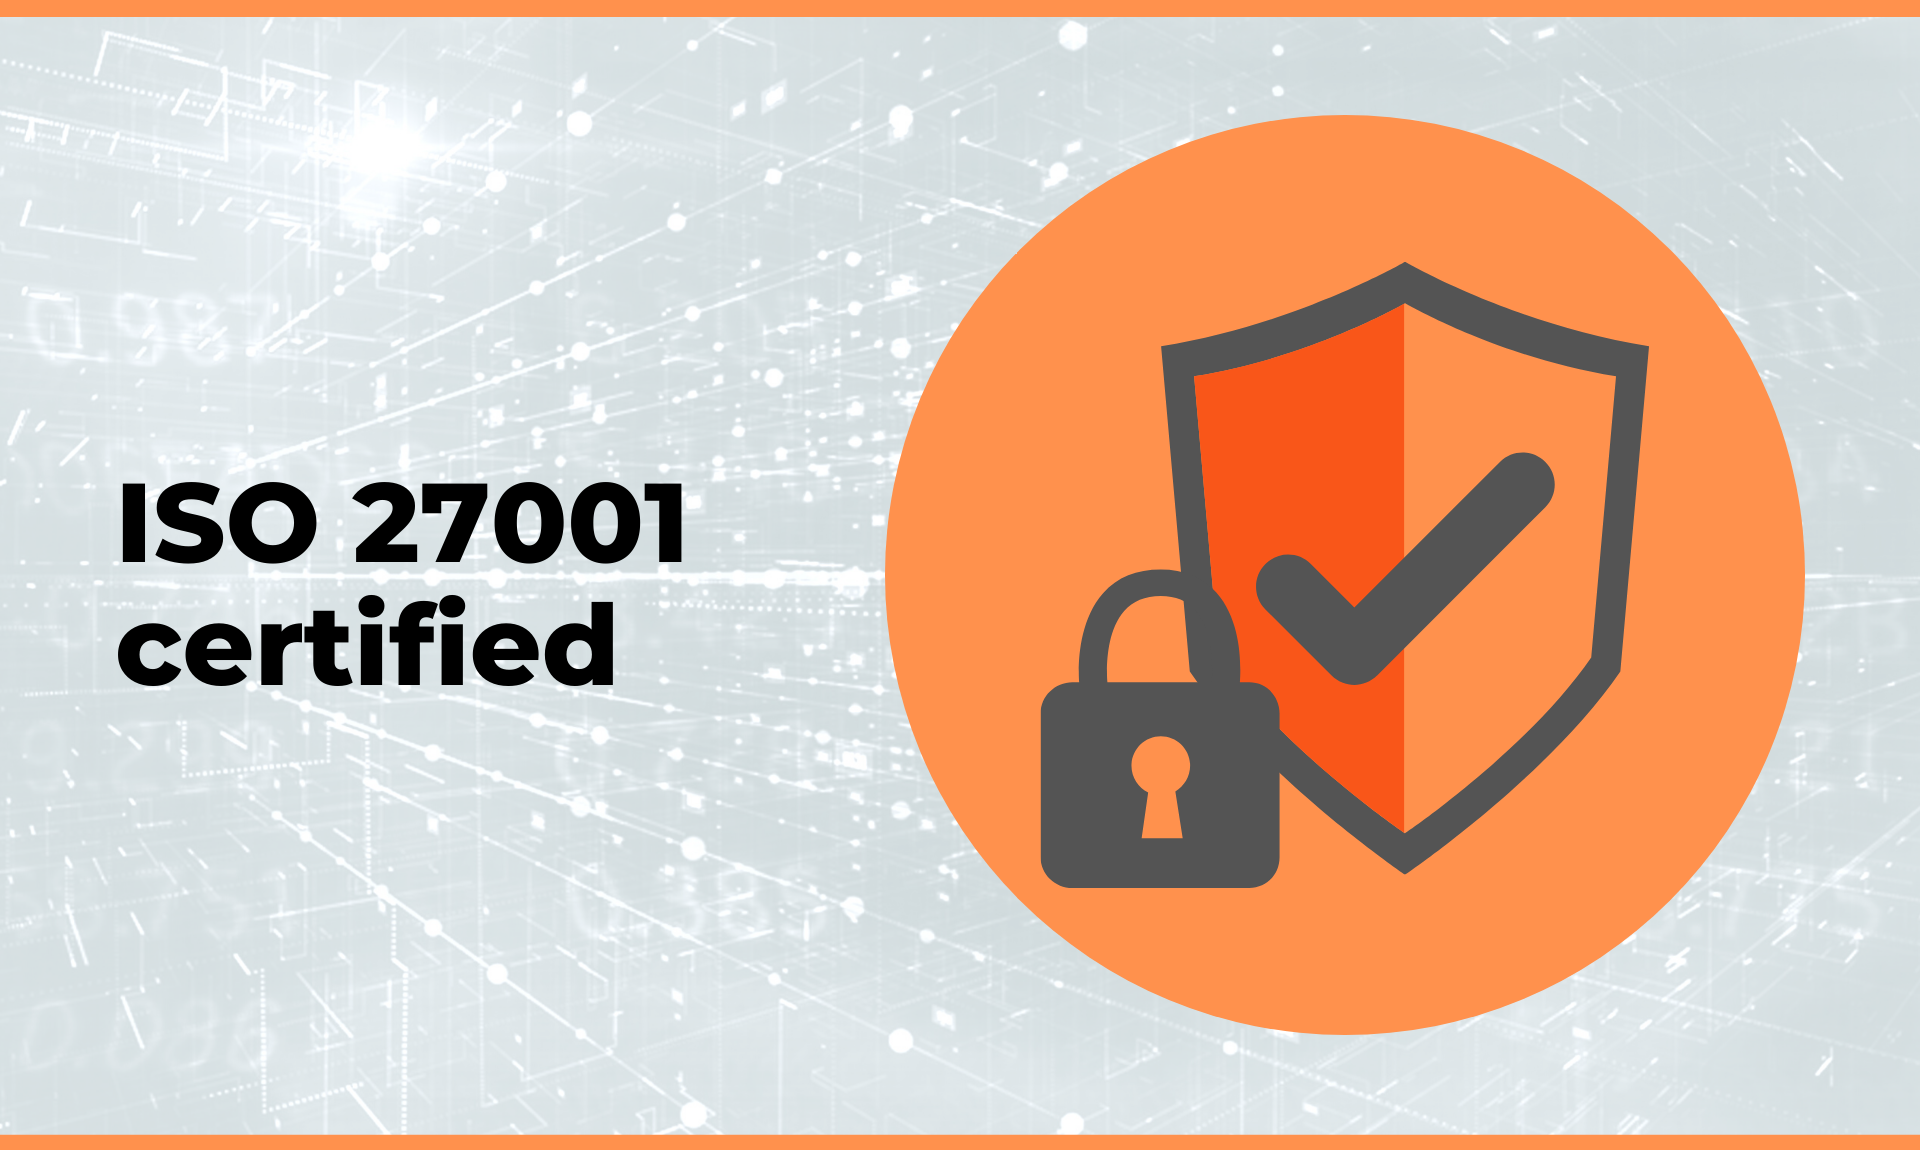 KNP | ISO27001 certified